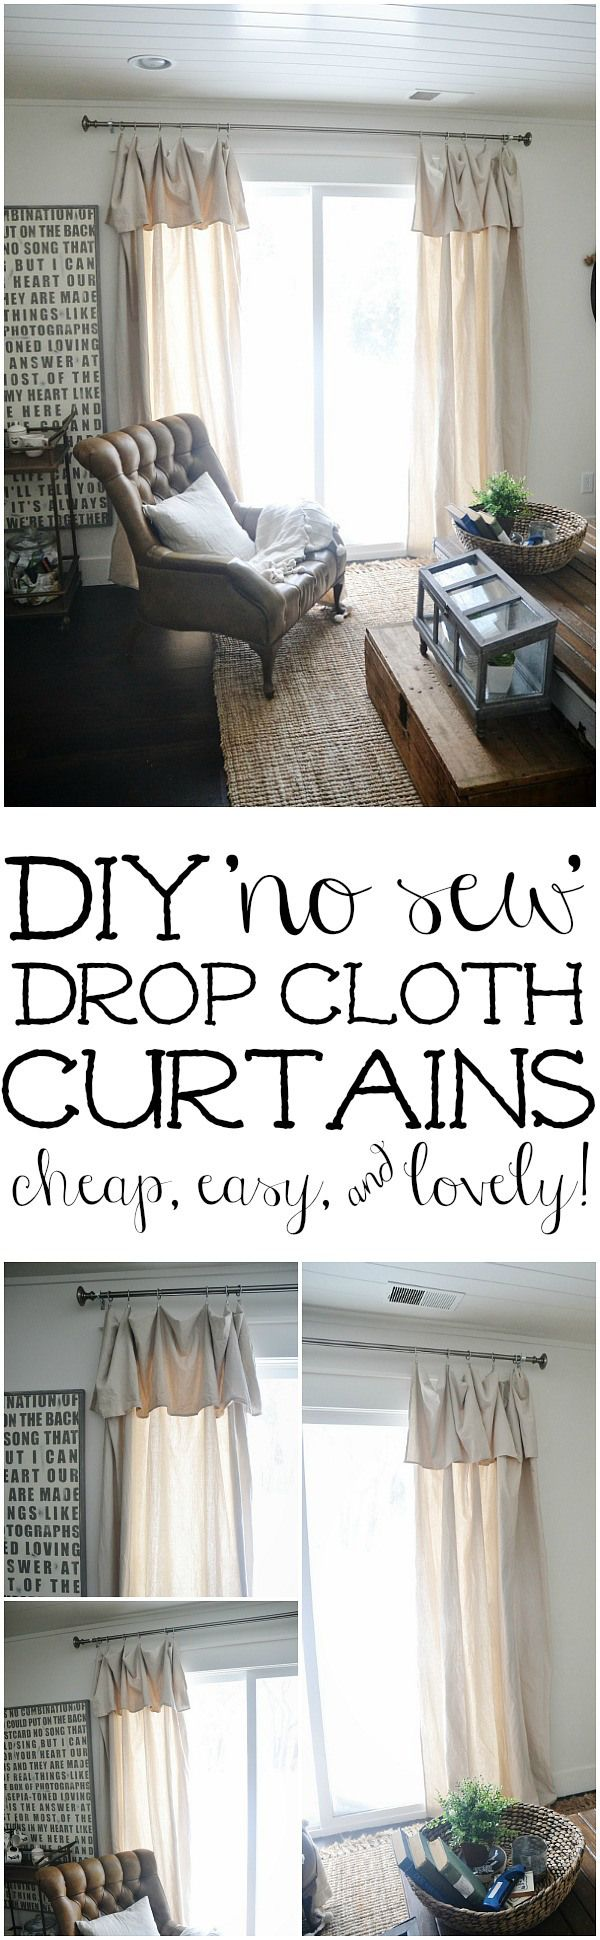 diy nosew drop cloth curtains the cheapest u0026 easiest diy curtains ever